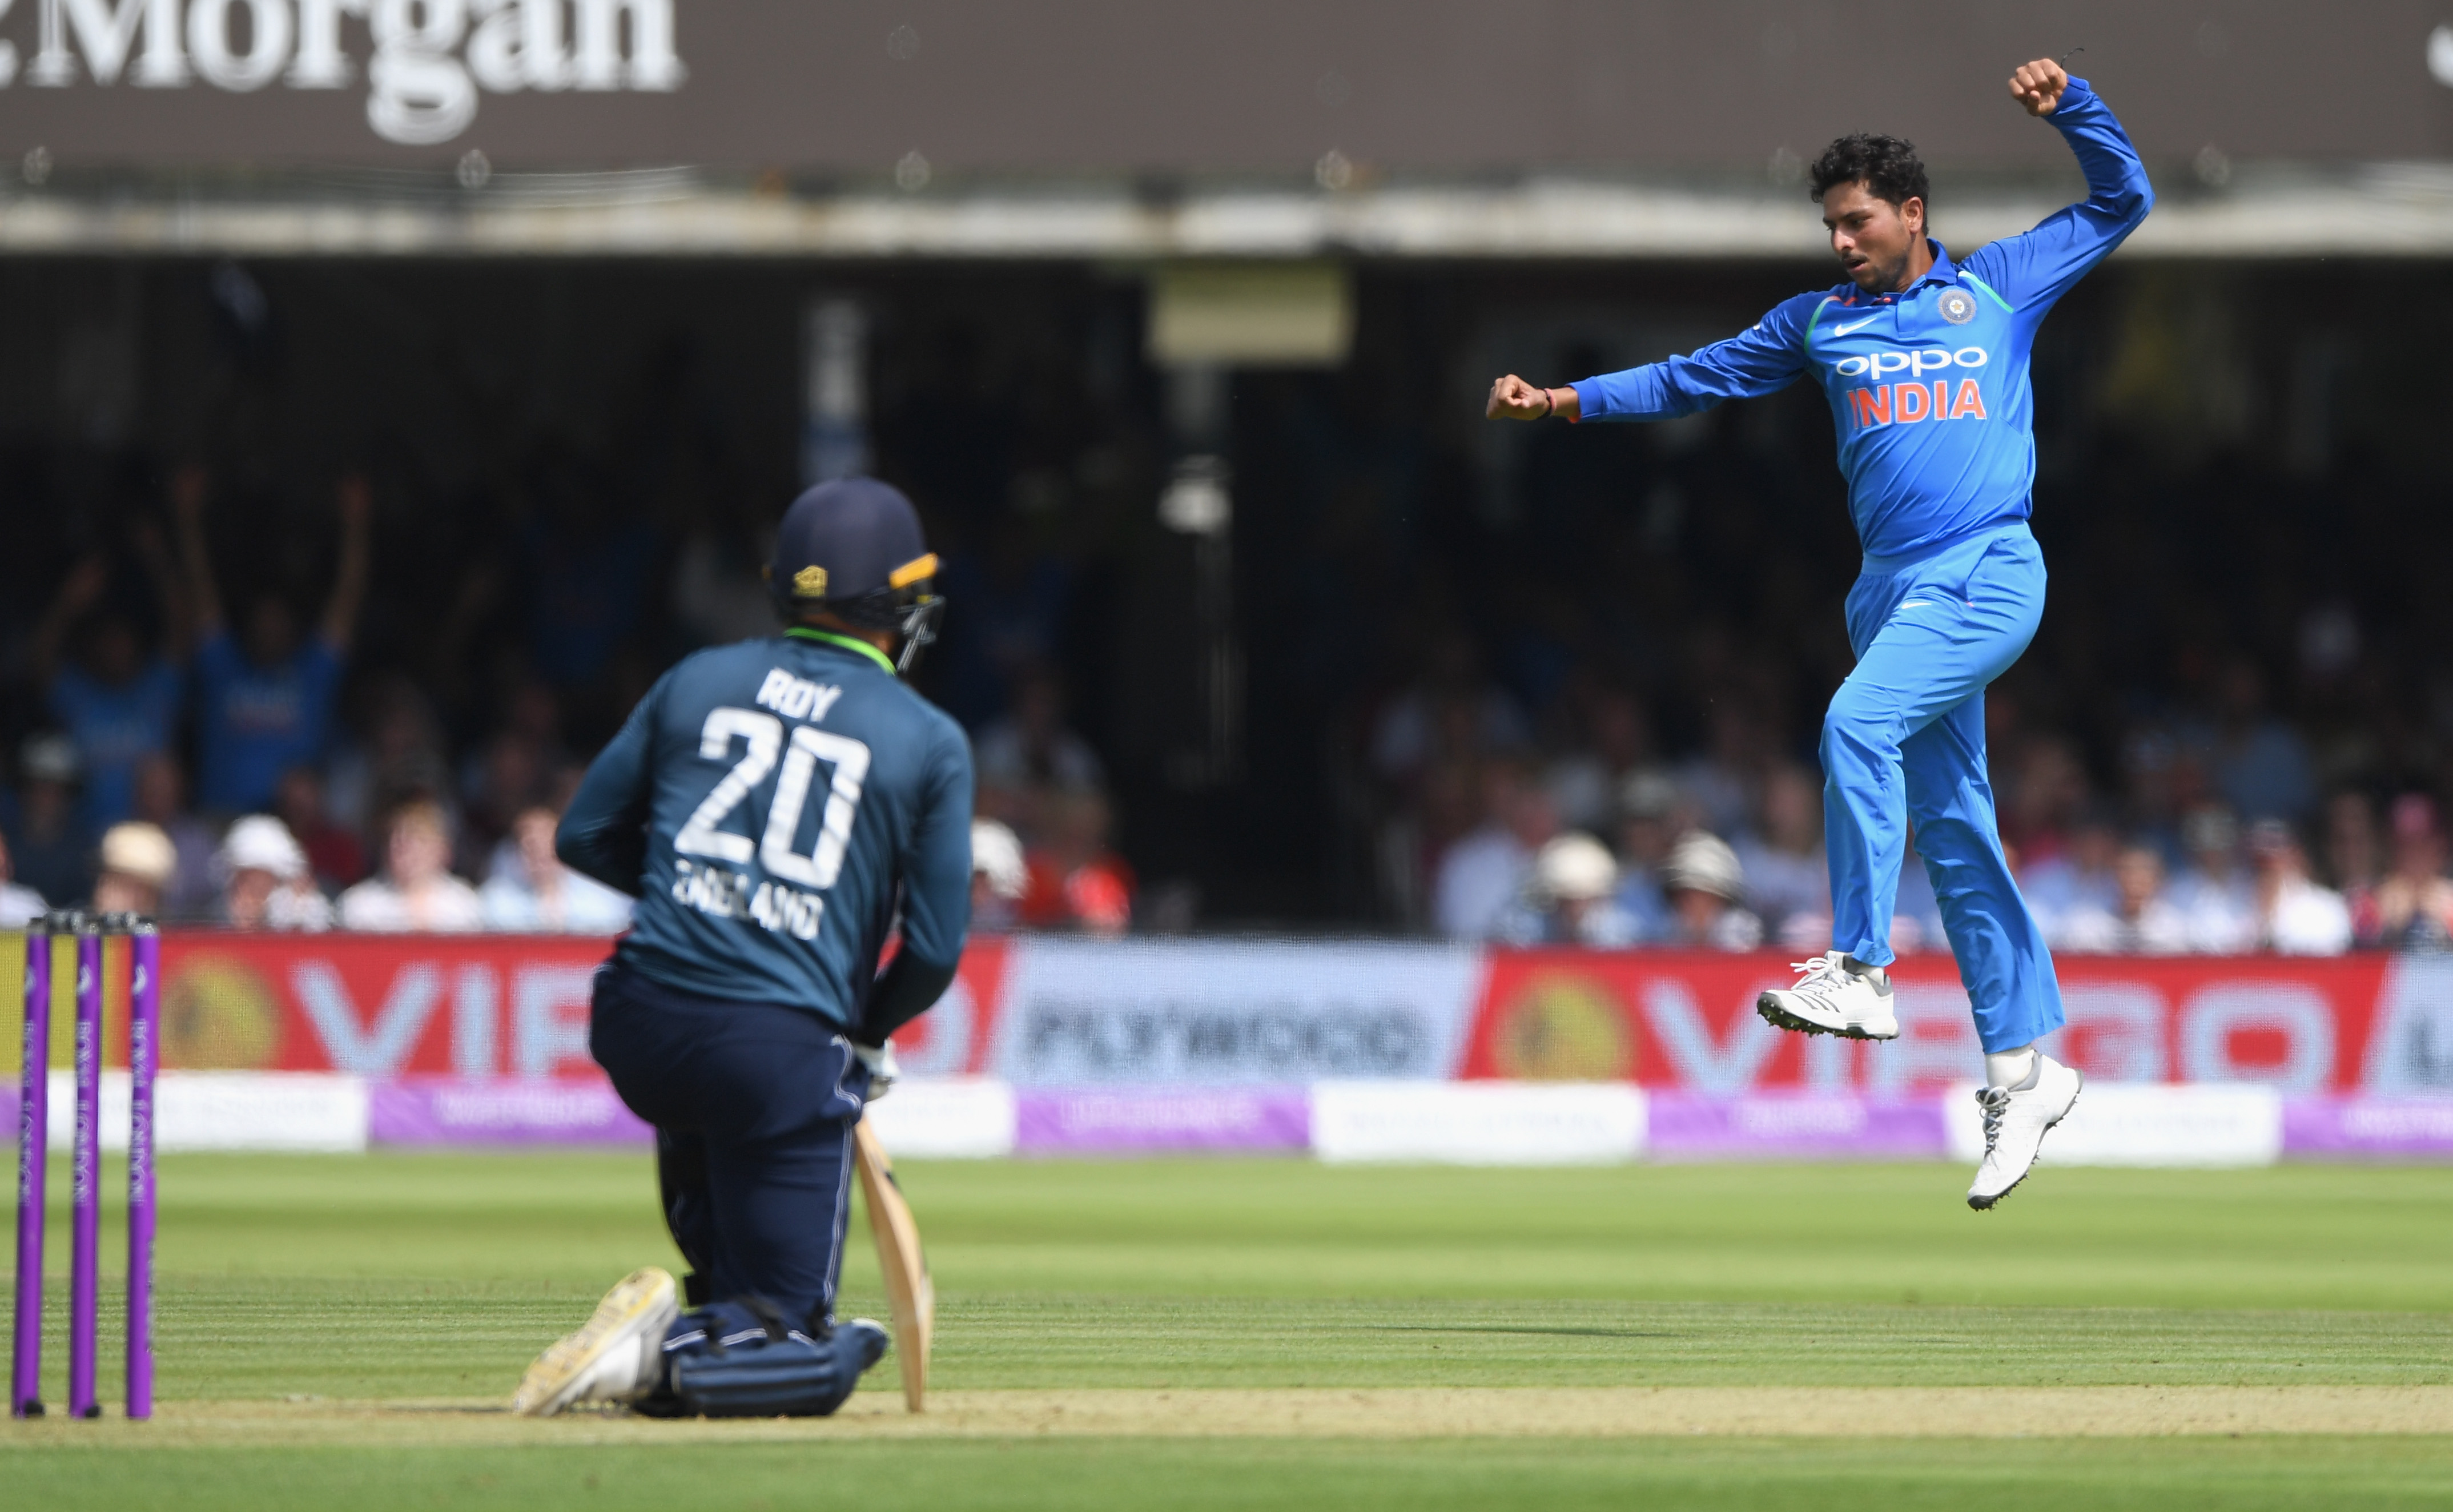 Kuldeep Yadav claimed 3 for 68 in his 10 overs at Lord's | Getty